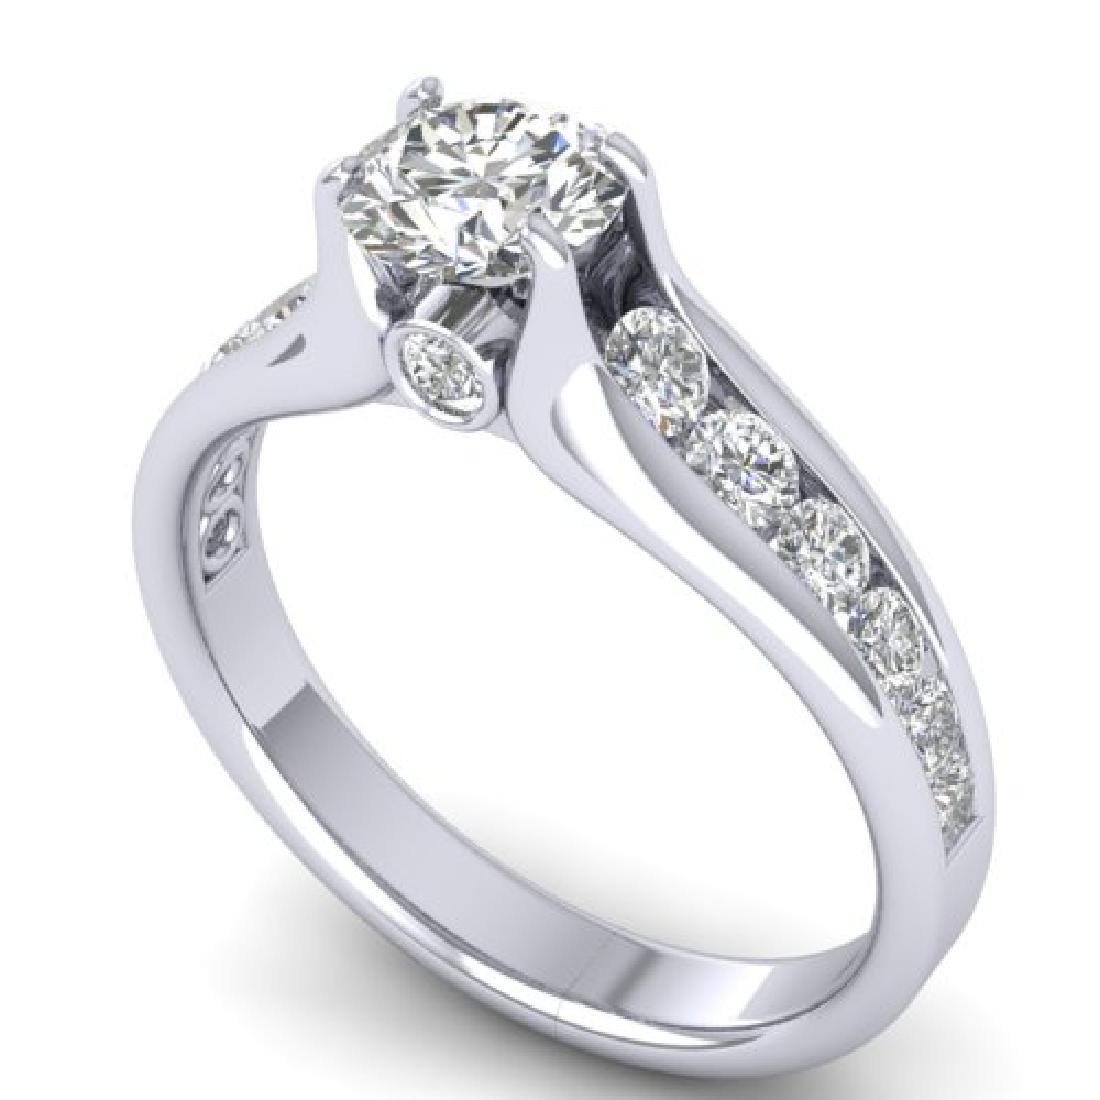 1.37 CTW Certified VS/SI Diamond Solitaire Ring 18K - 2